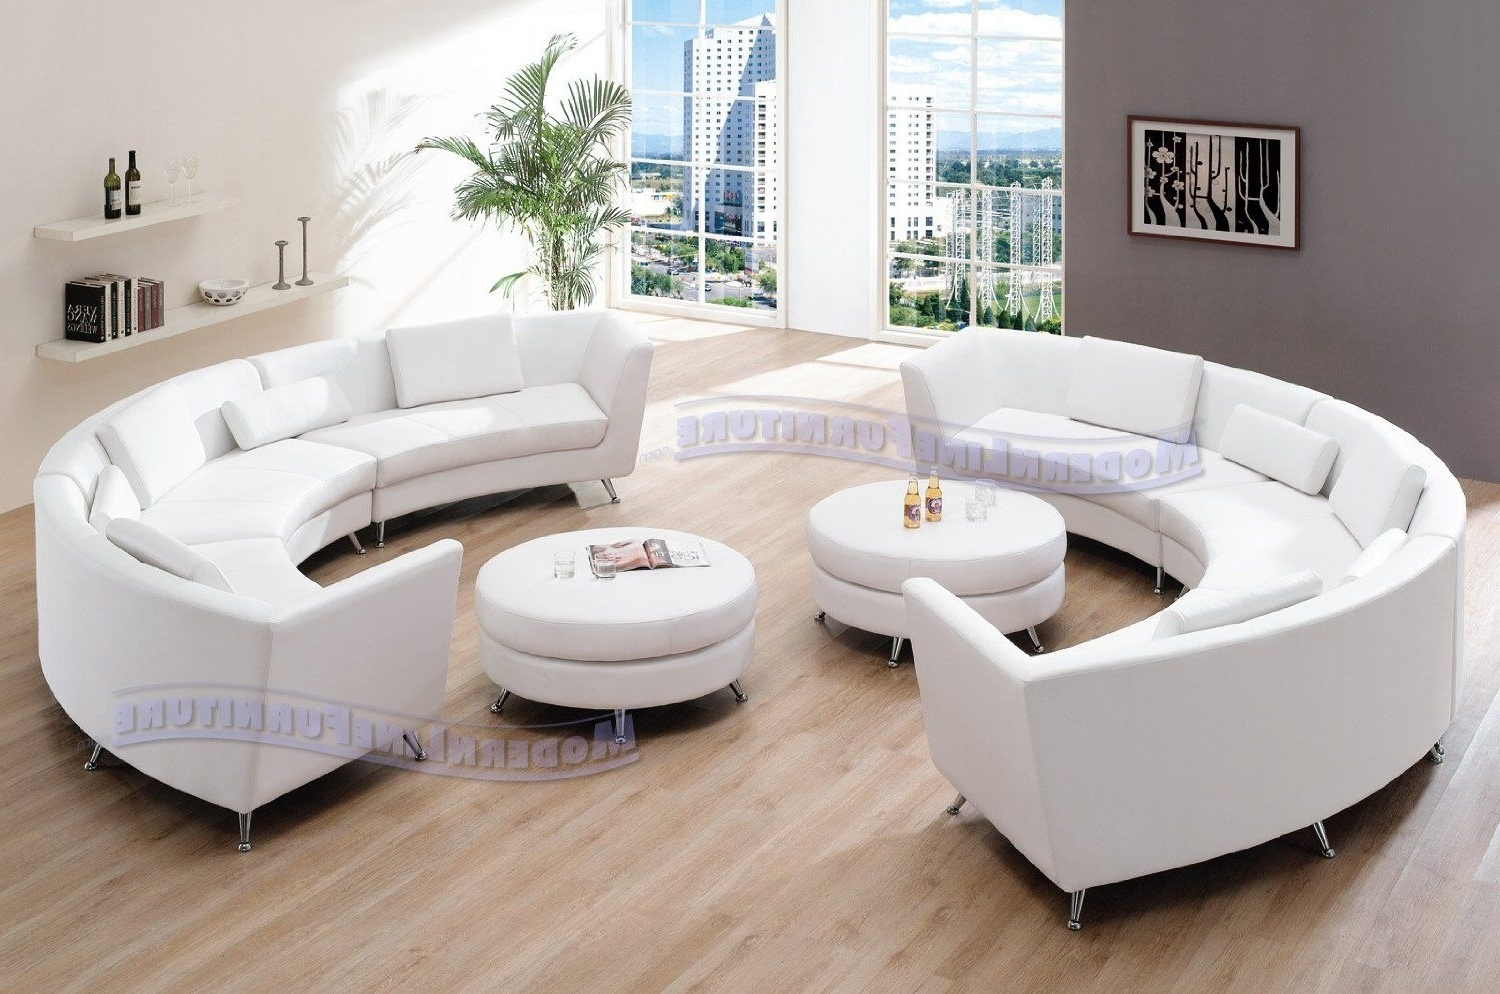 Sectional Sofas At Amazon Regarding Most Up To Date Amazon: Exclusive Modern Furniture Vip Sectional With Two (View 17 of 20)